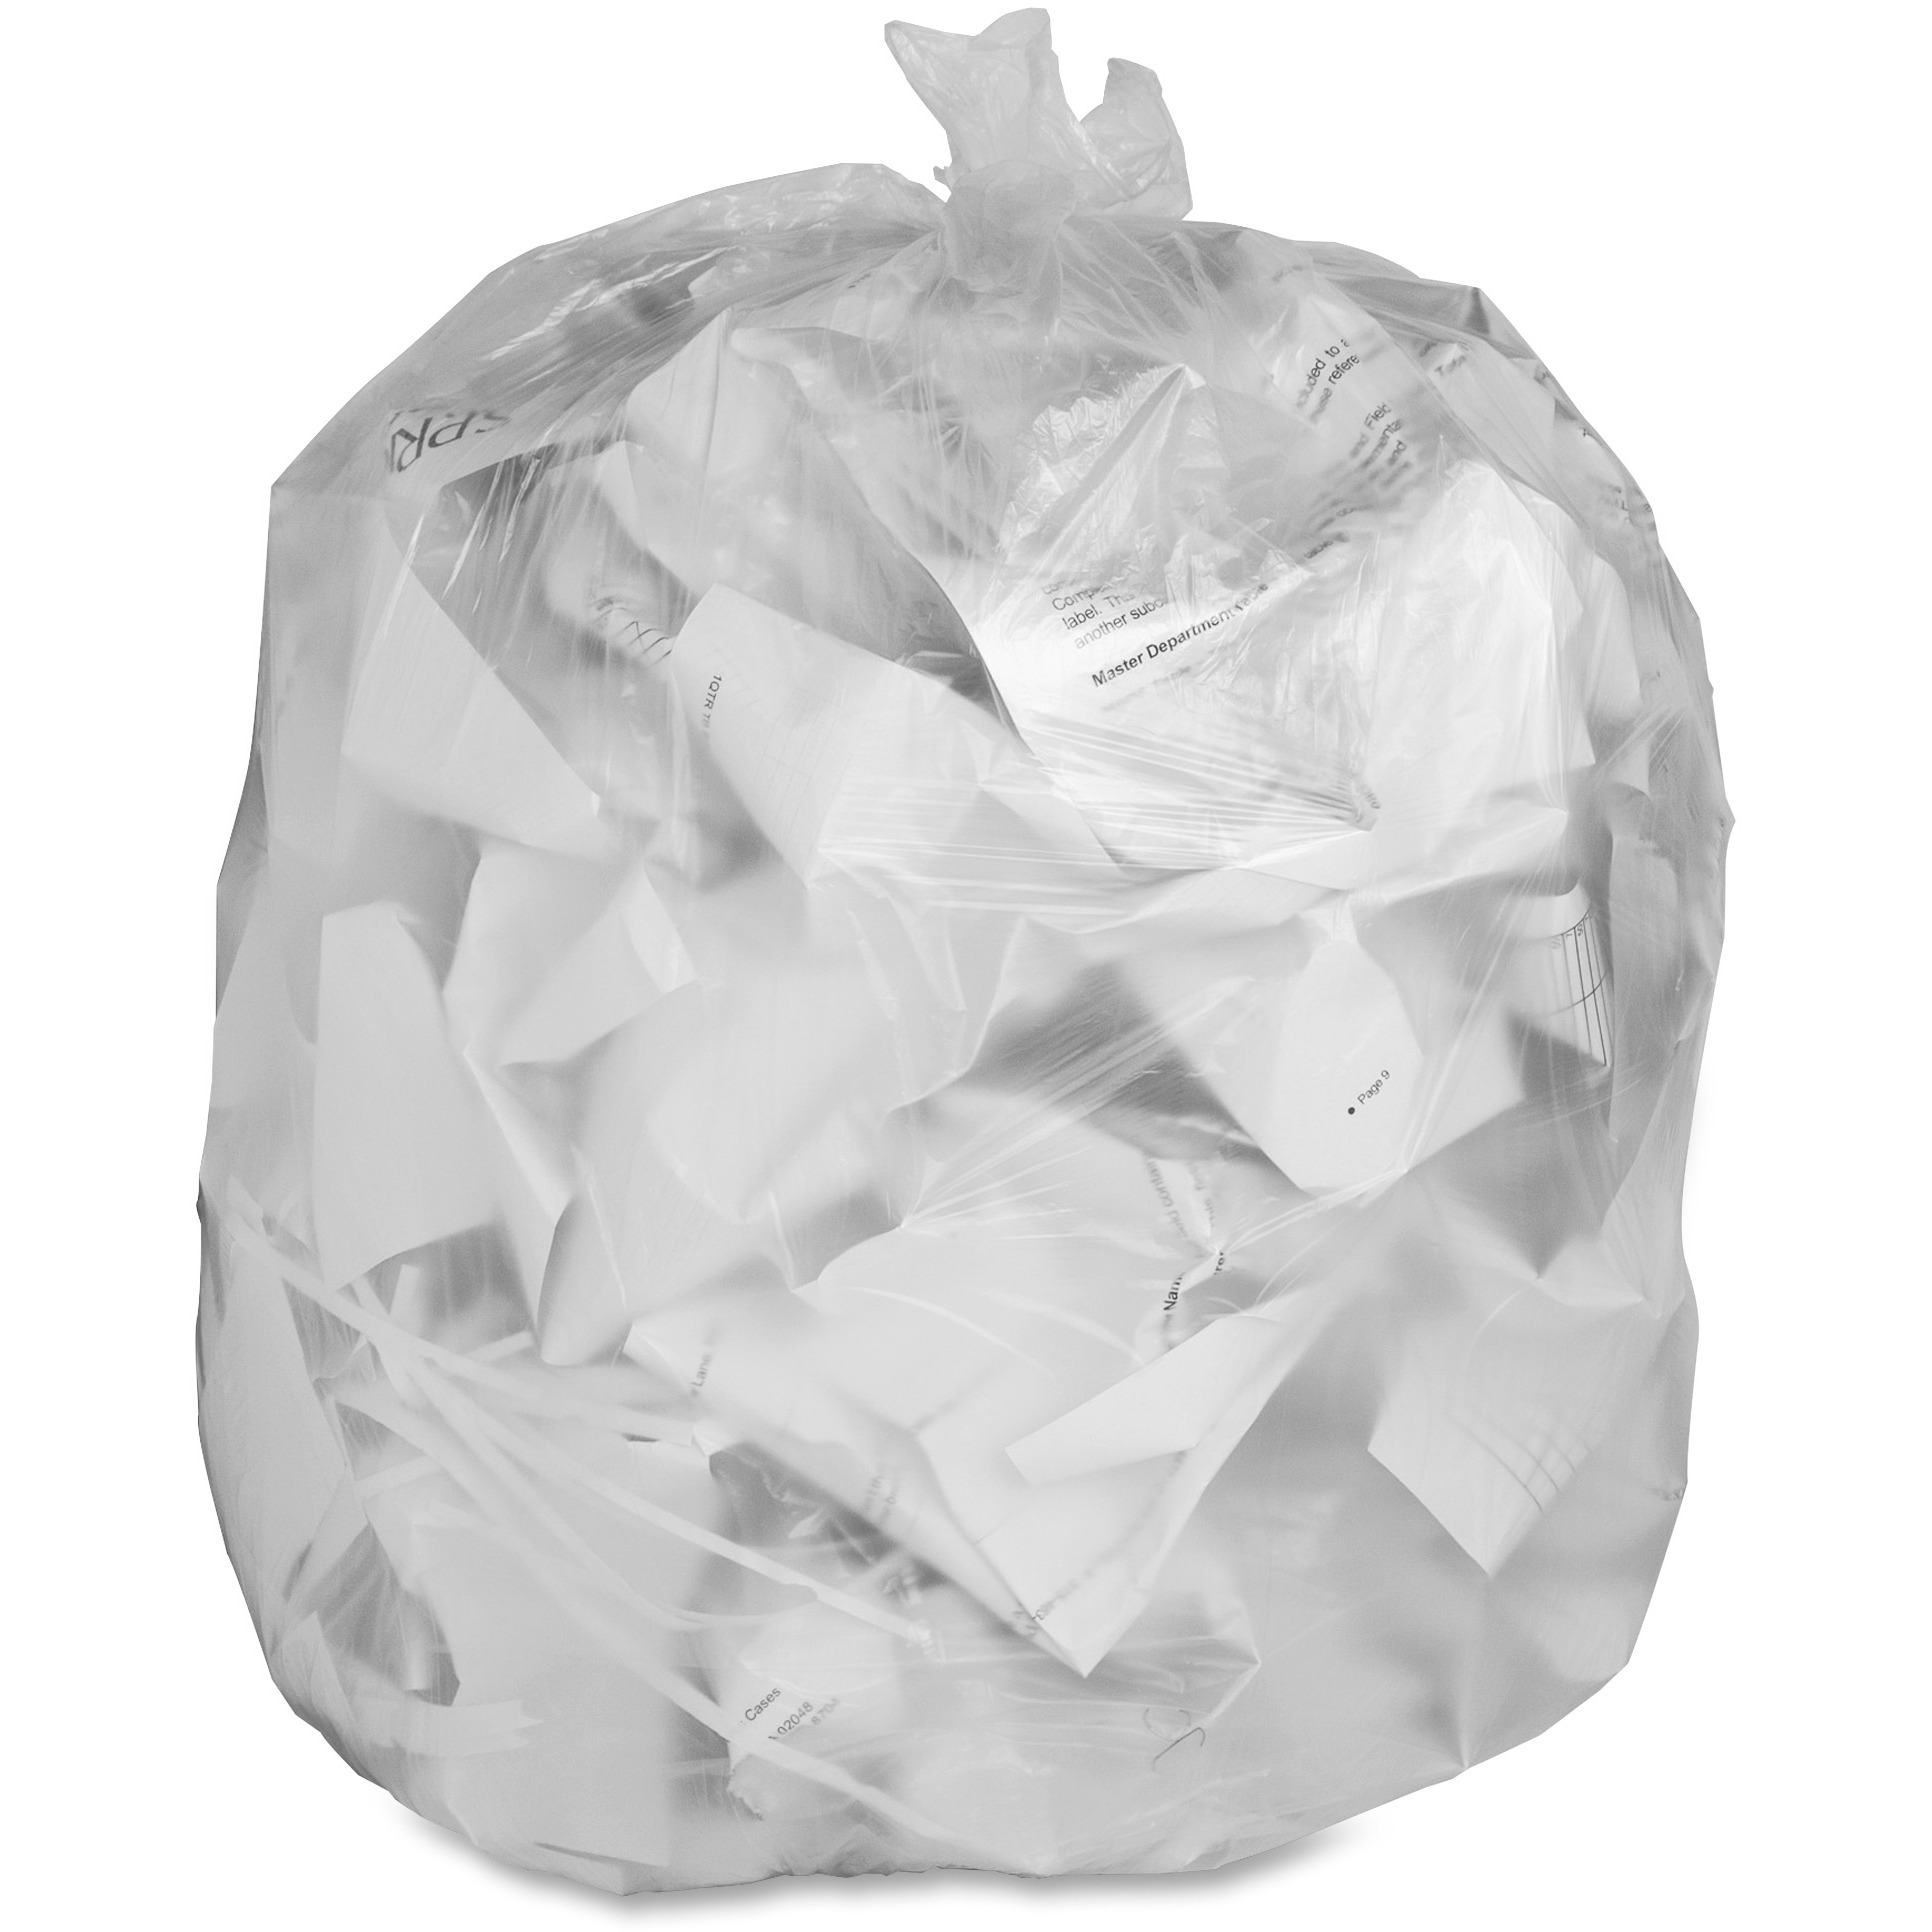 Genuine Joe, GJO70010, Economy High-Density Can Liners, 1000 / Carton, Translucent, 10 gal